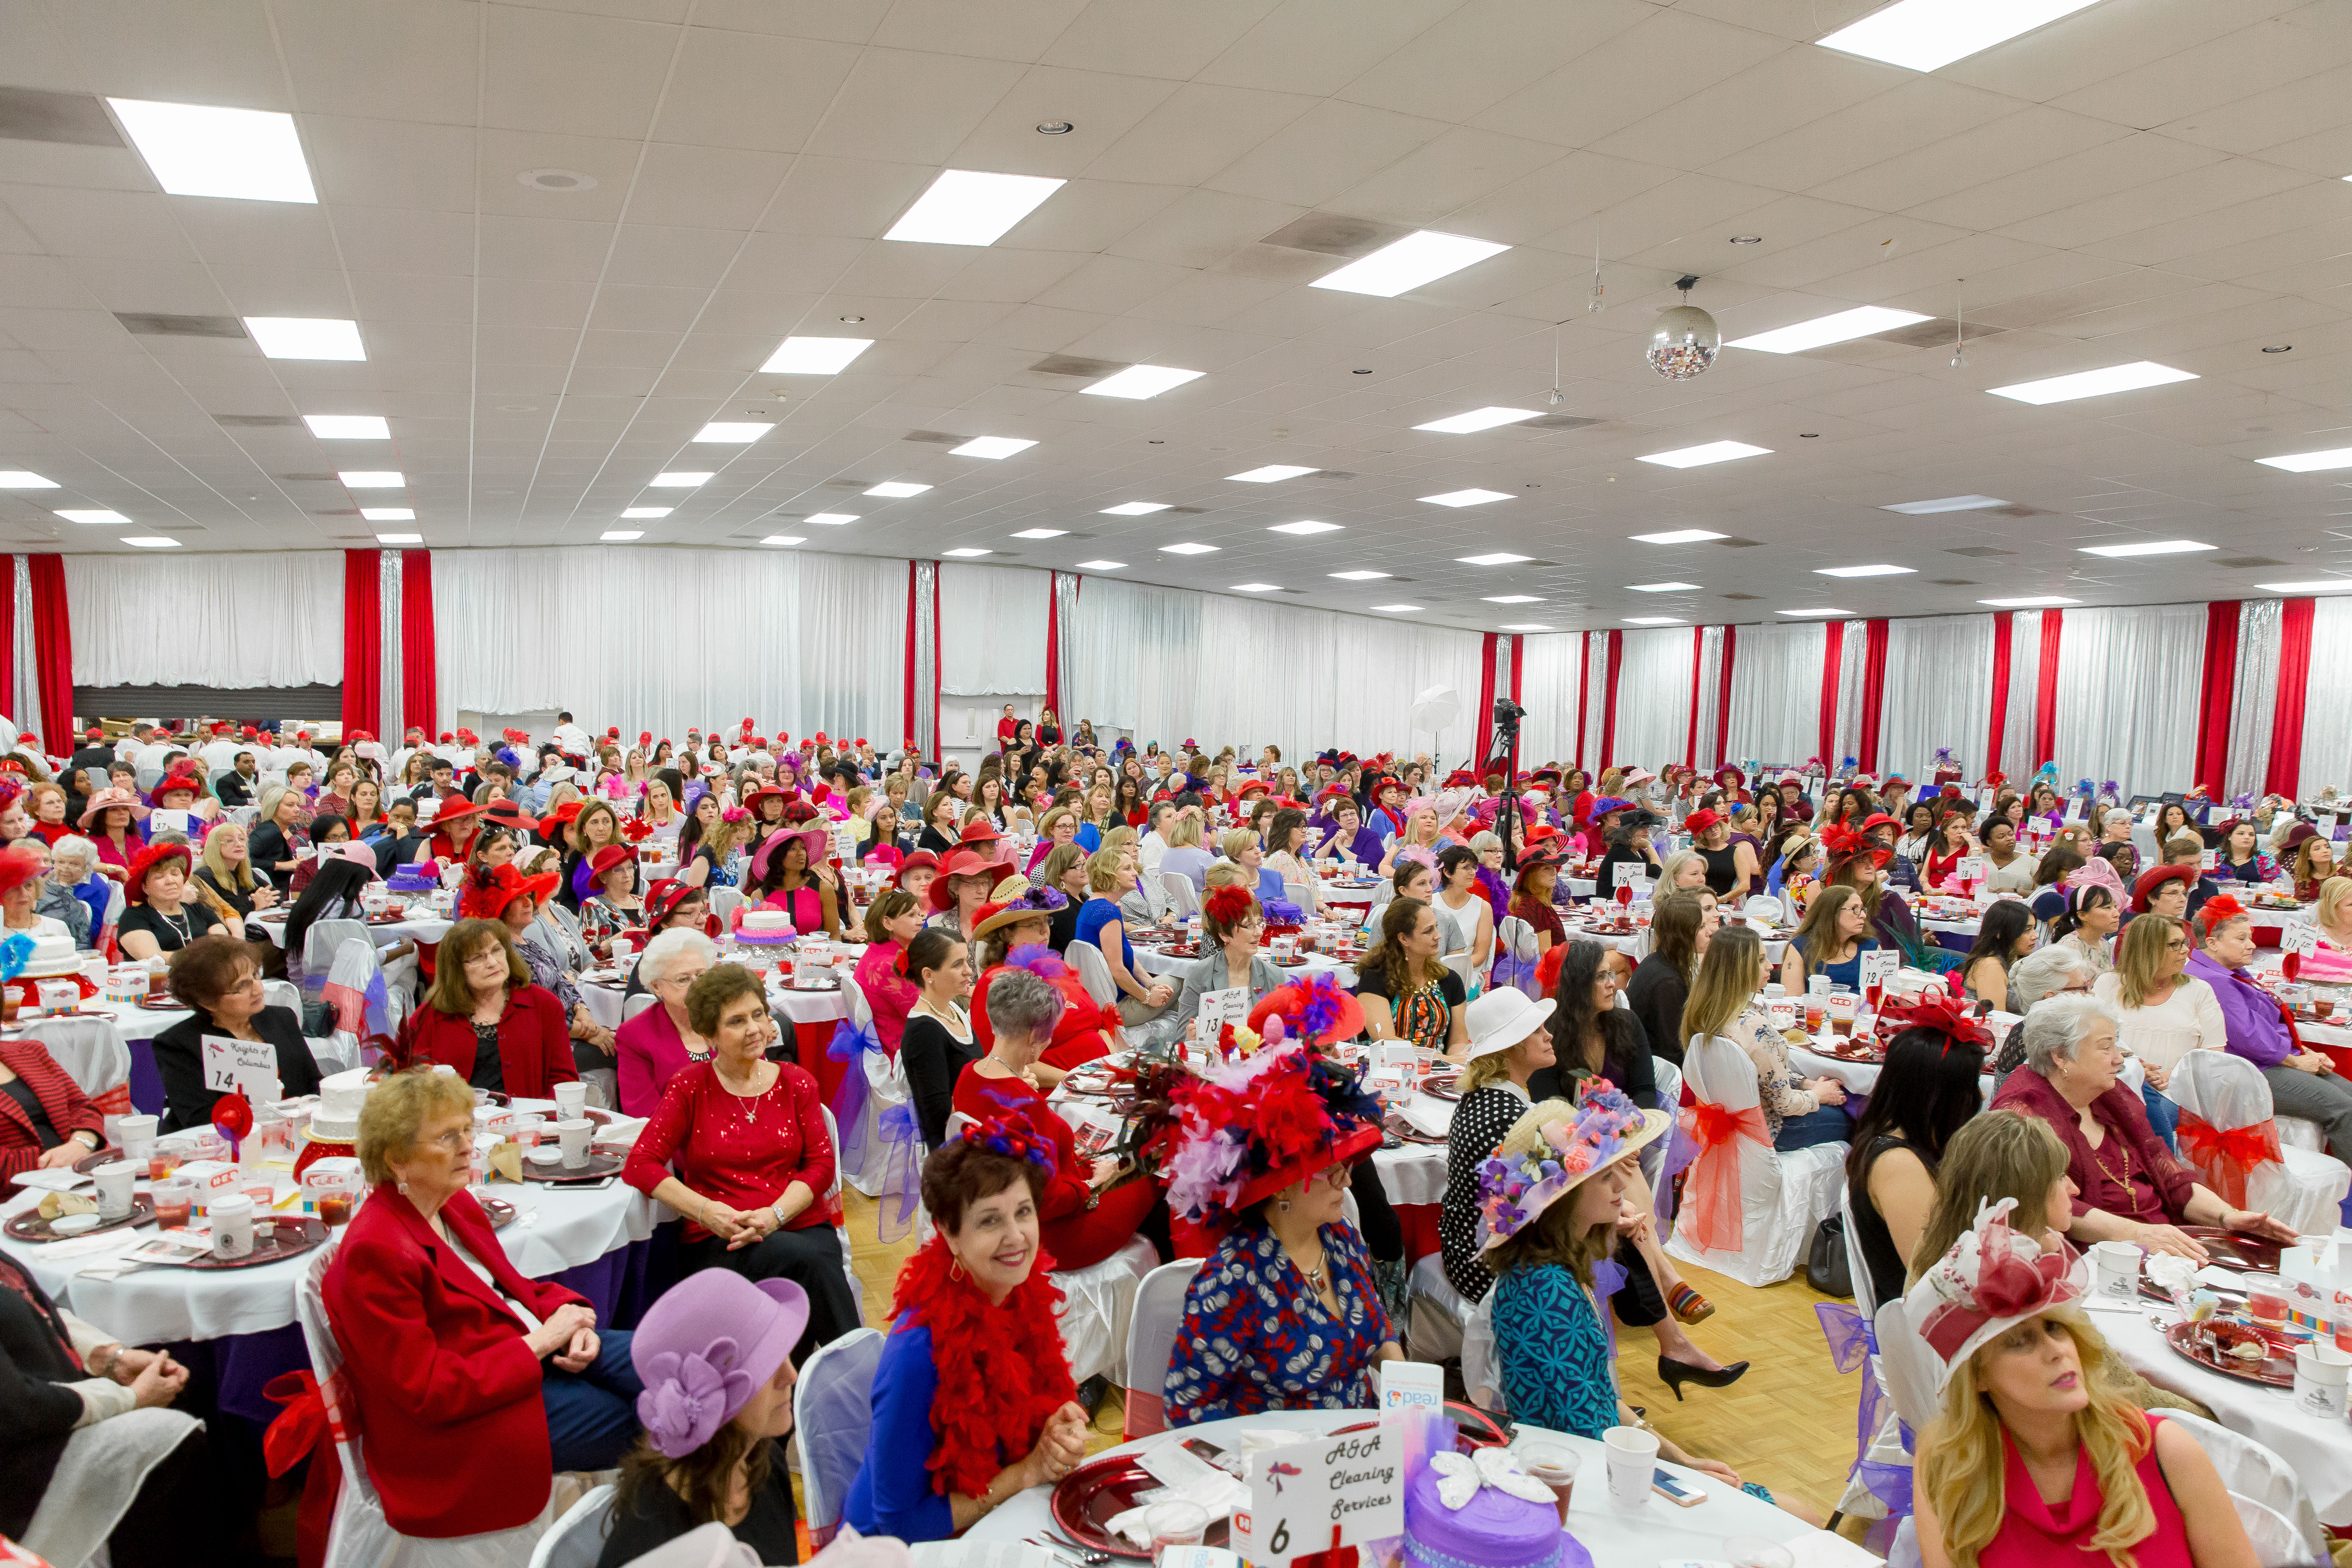 The Red Hat Literacy Luncheon